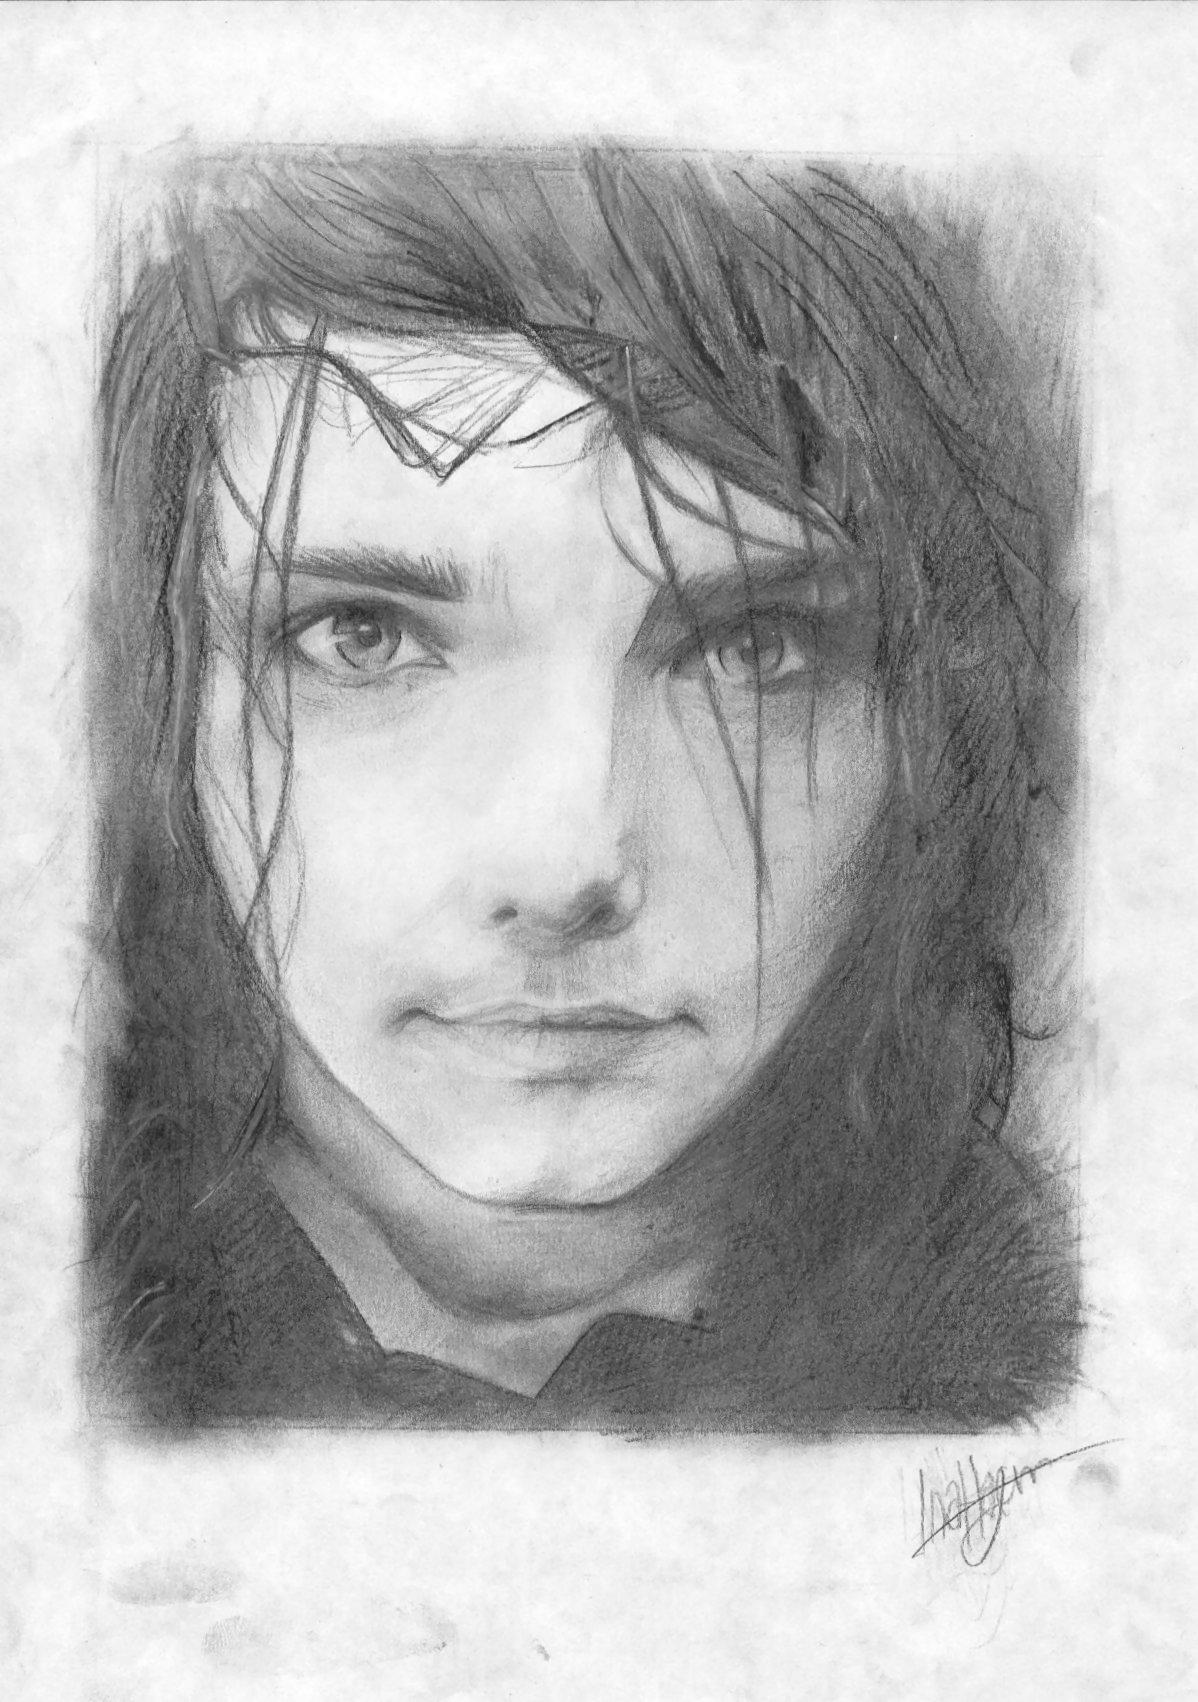 Gerard Way by imaginaryghost